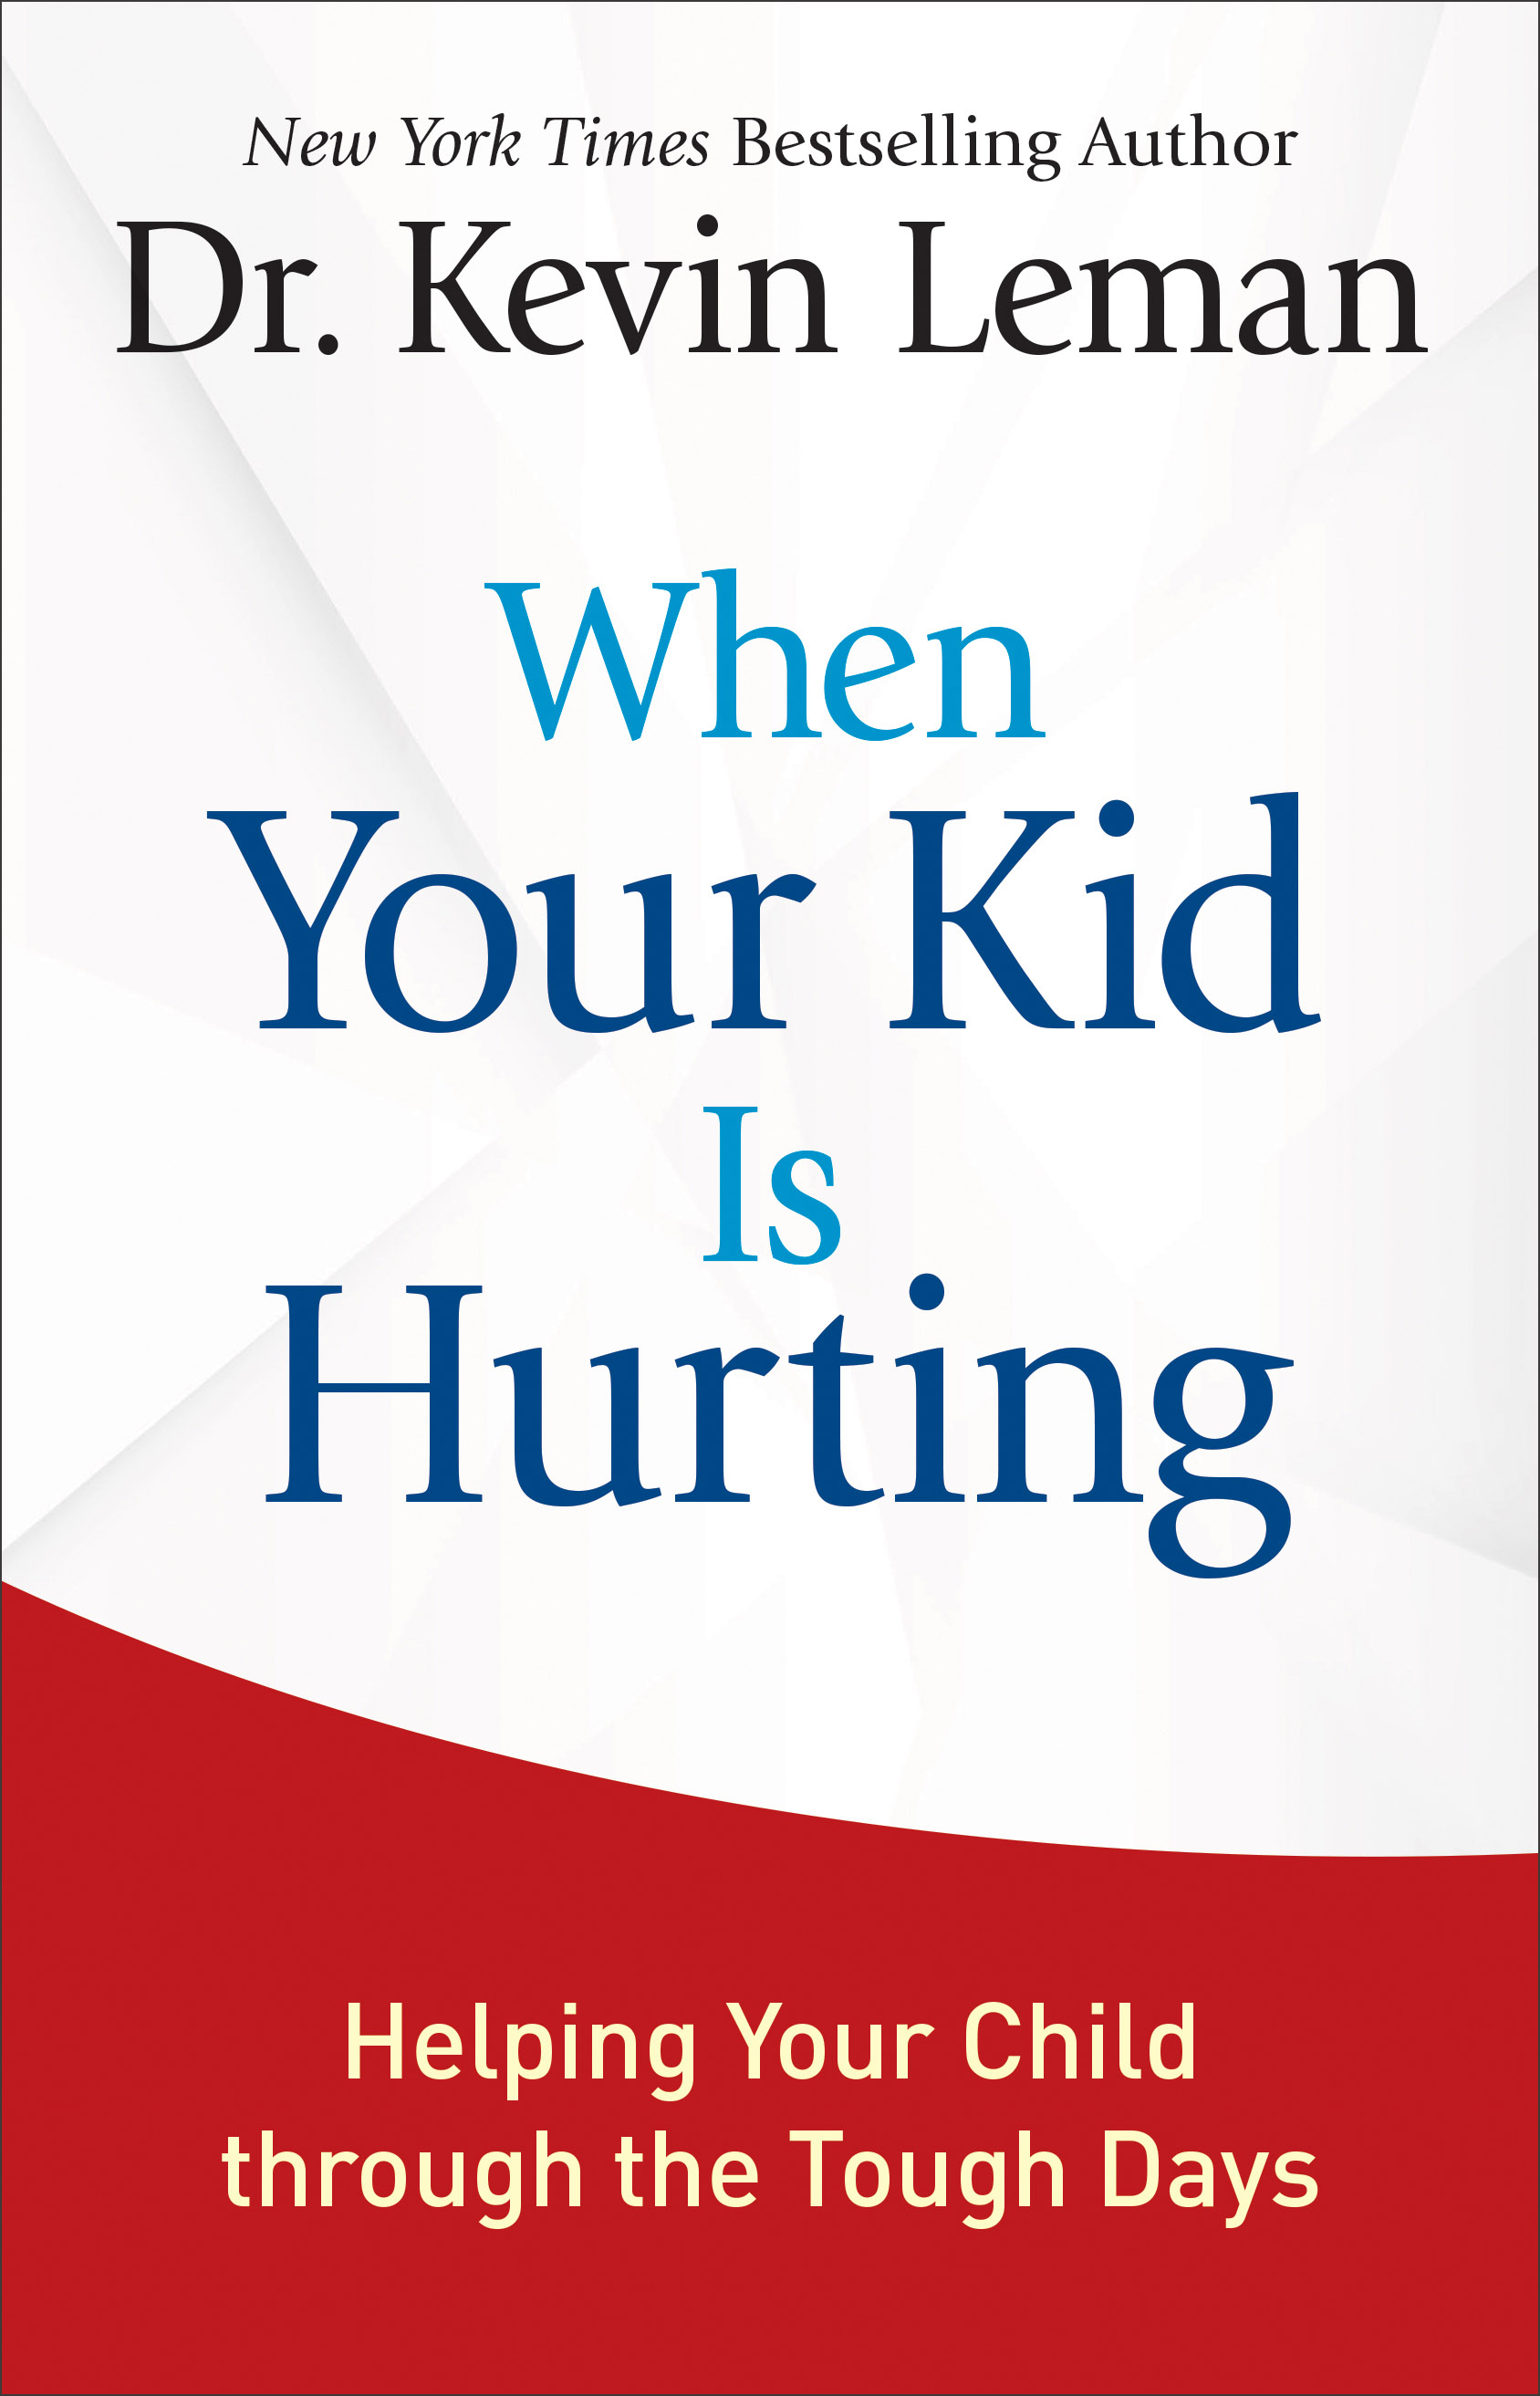 What to Do 'When Your Kid Is Hurting'